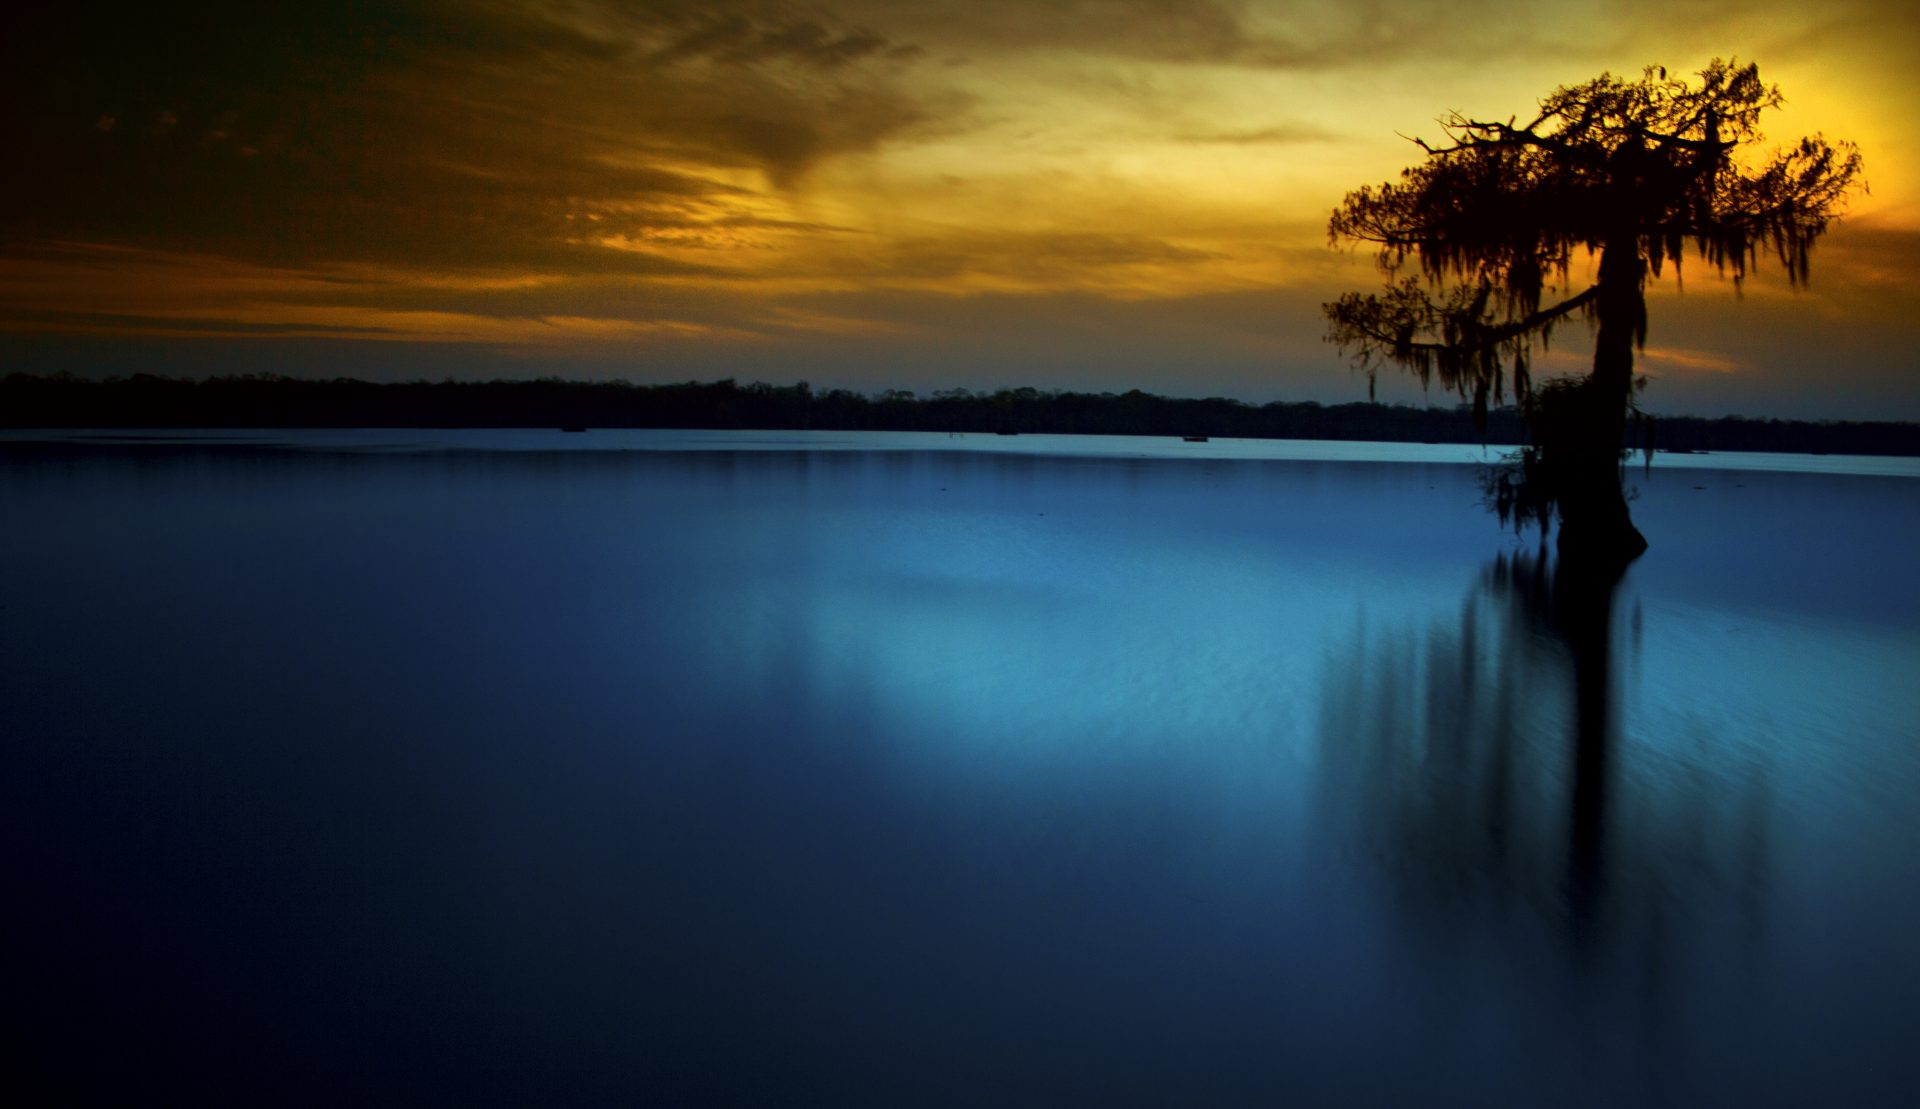 Discover The Unspoiled Beauty Of This Mesmerizing Louisiana Lake